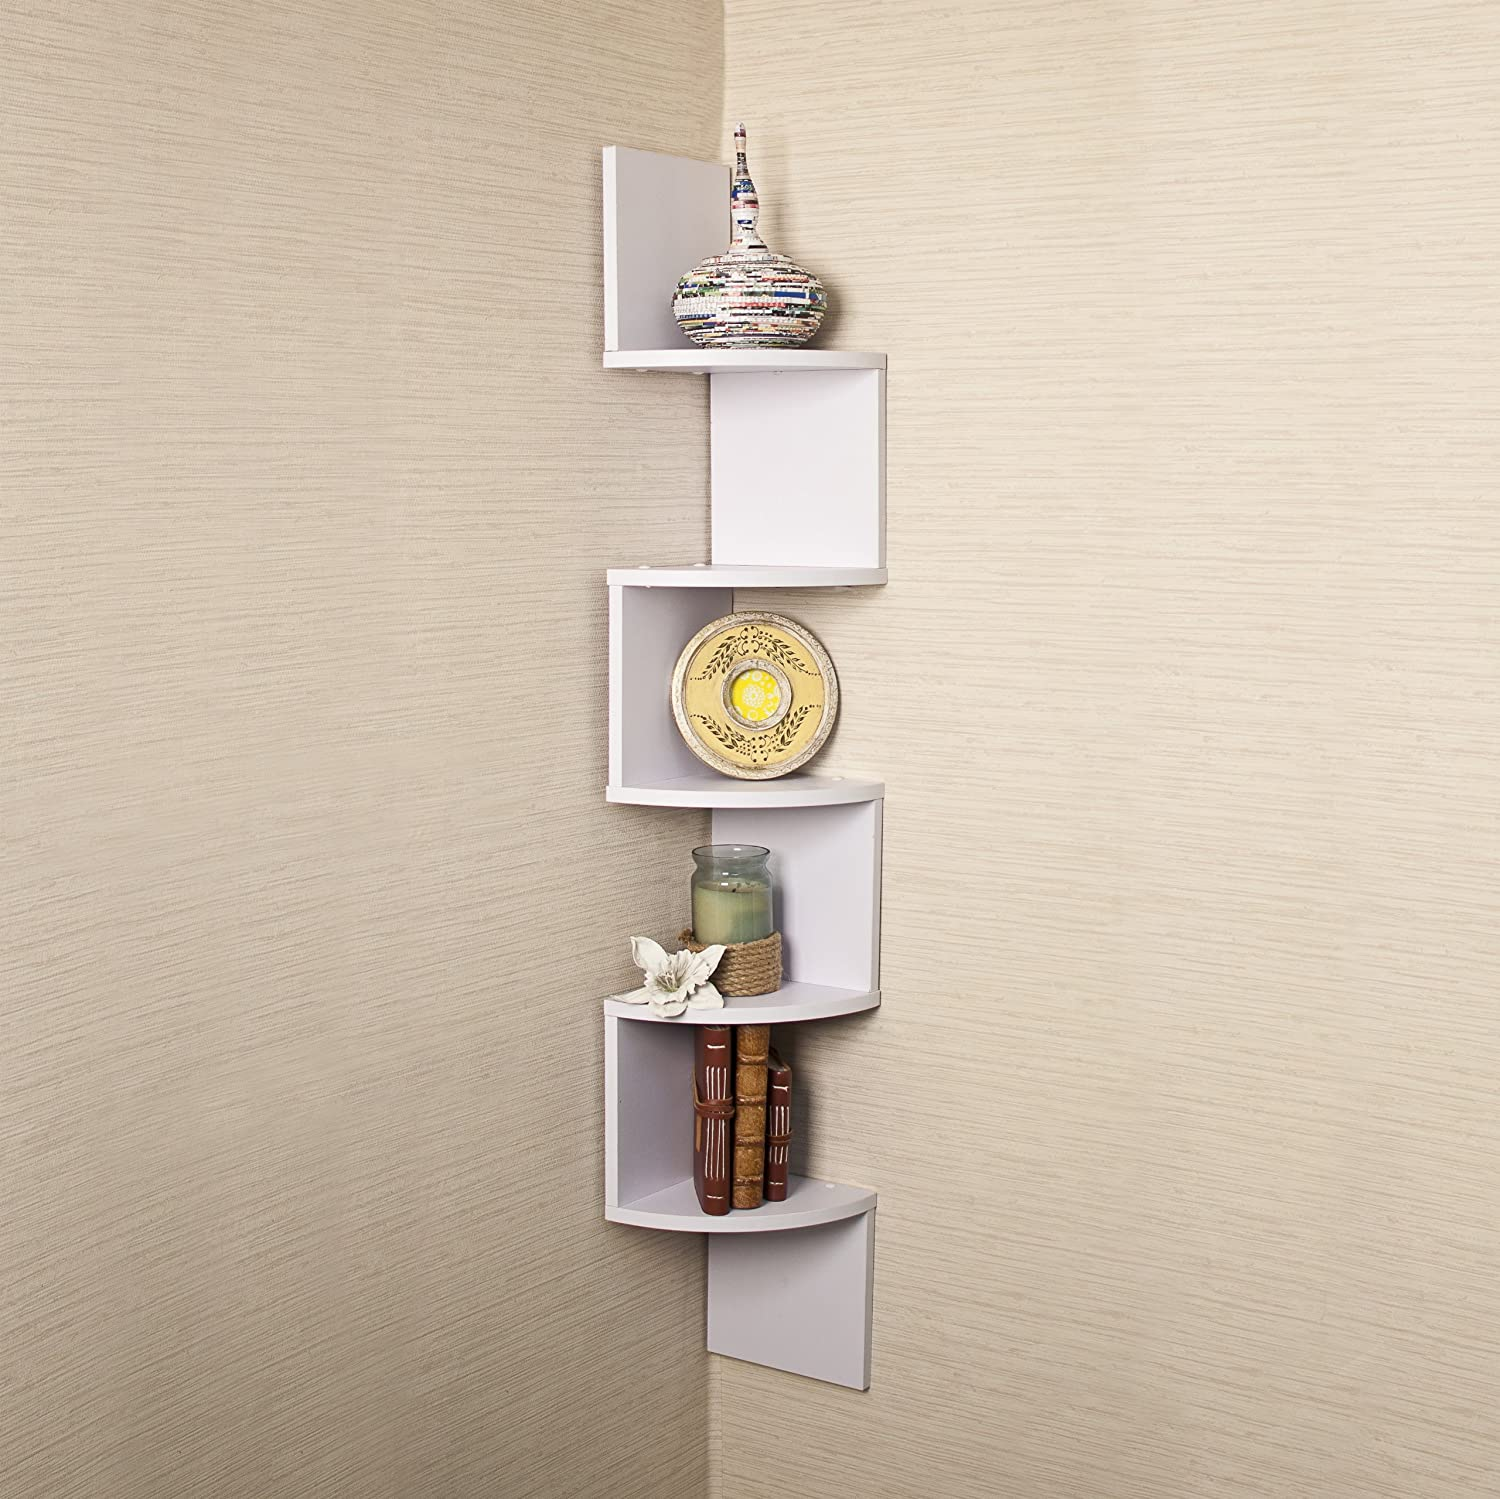 Diagenesis unique wall decor shelves for Unusual decorative accessories